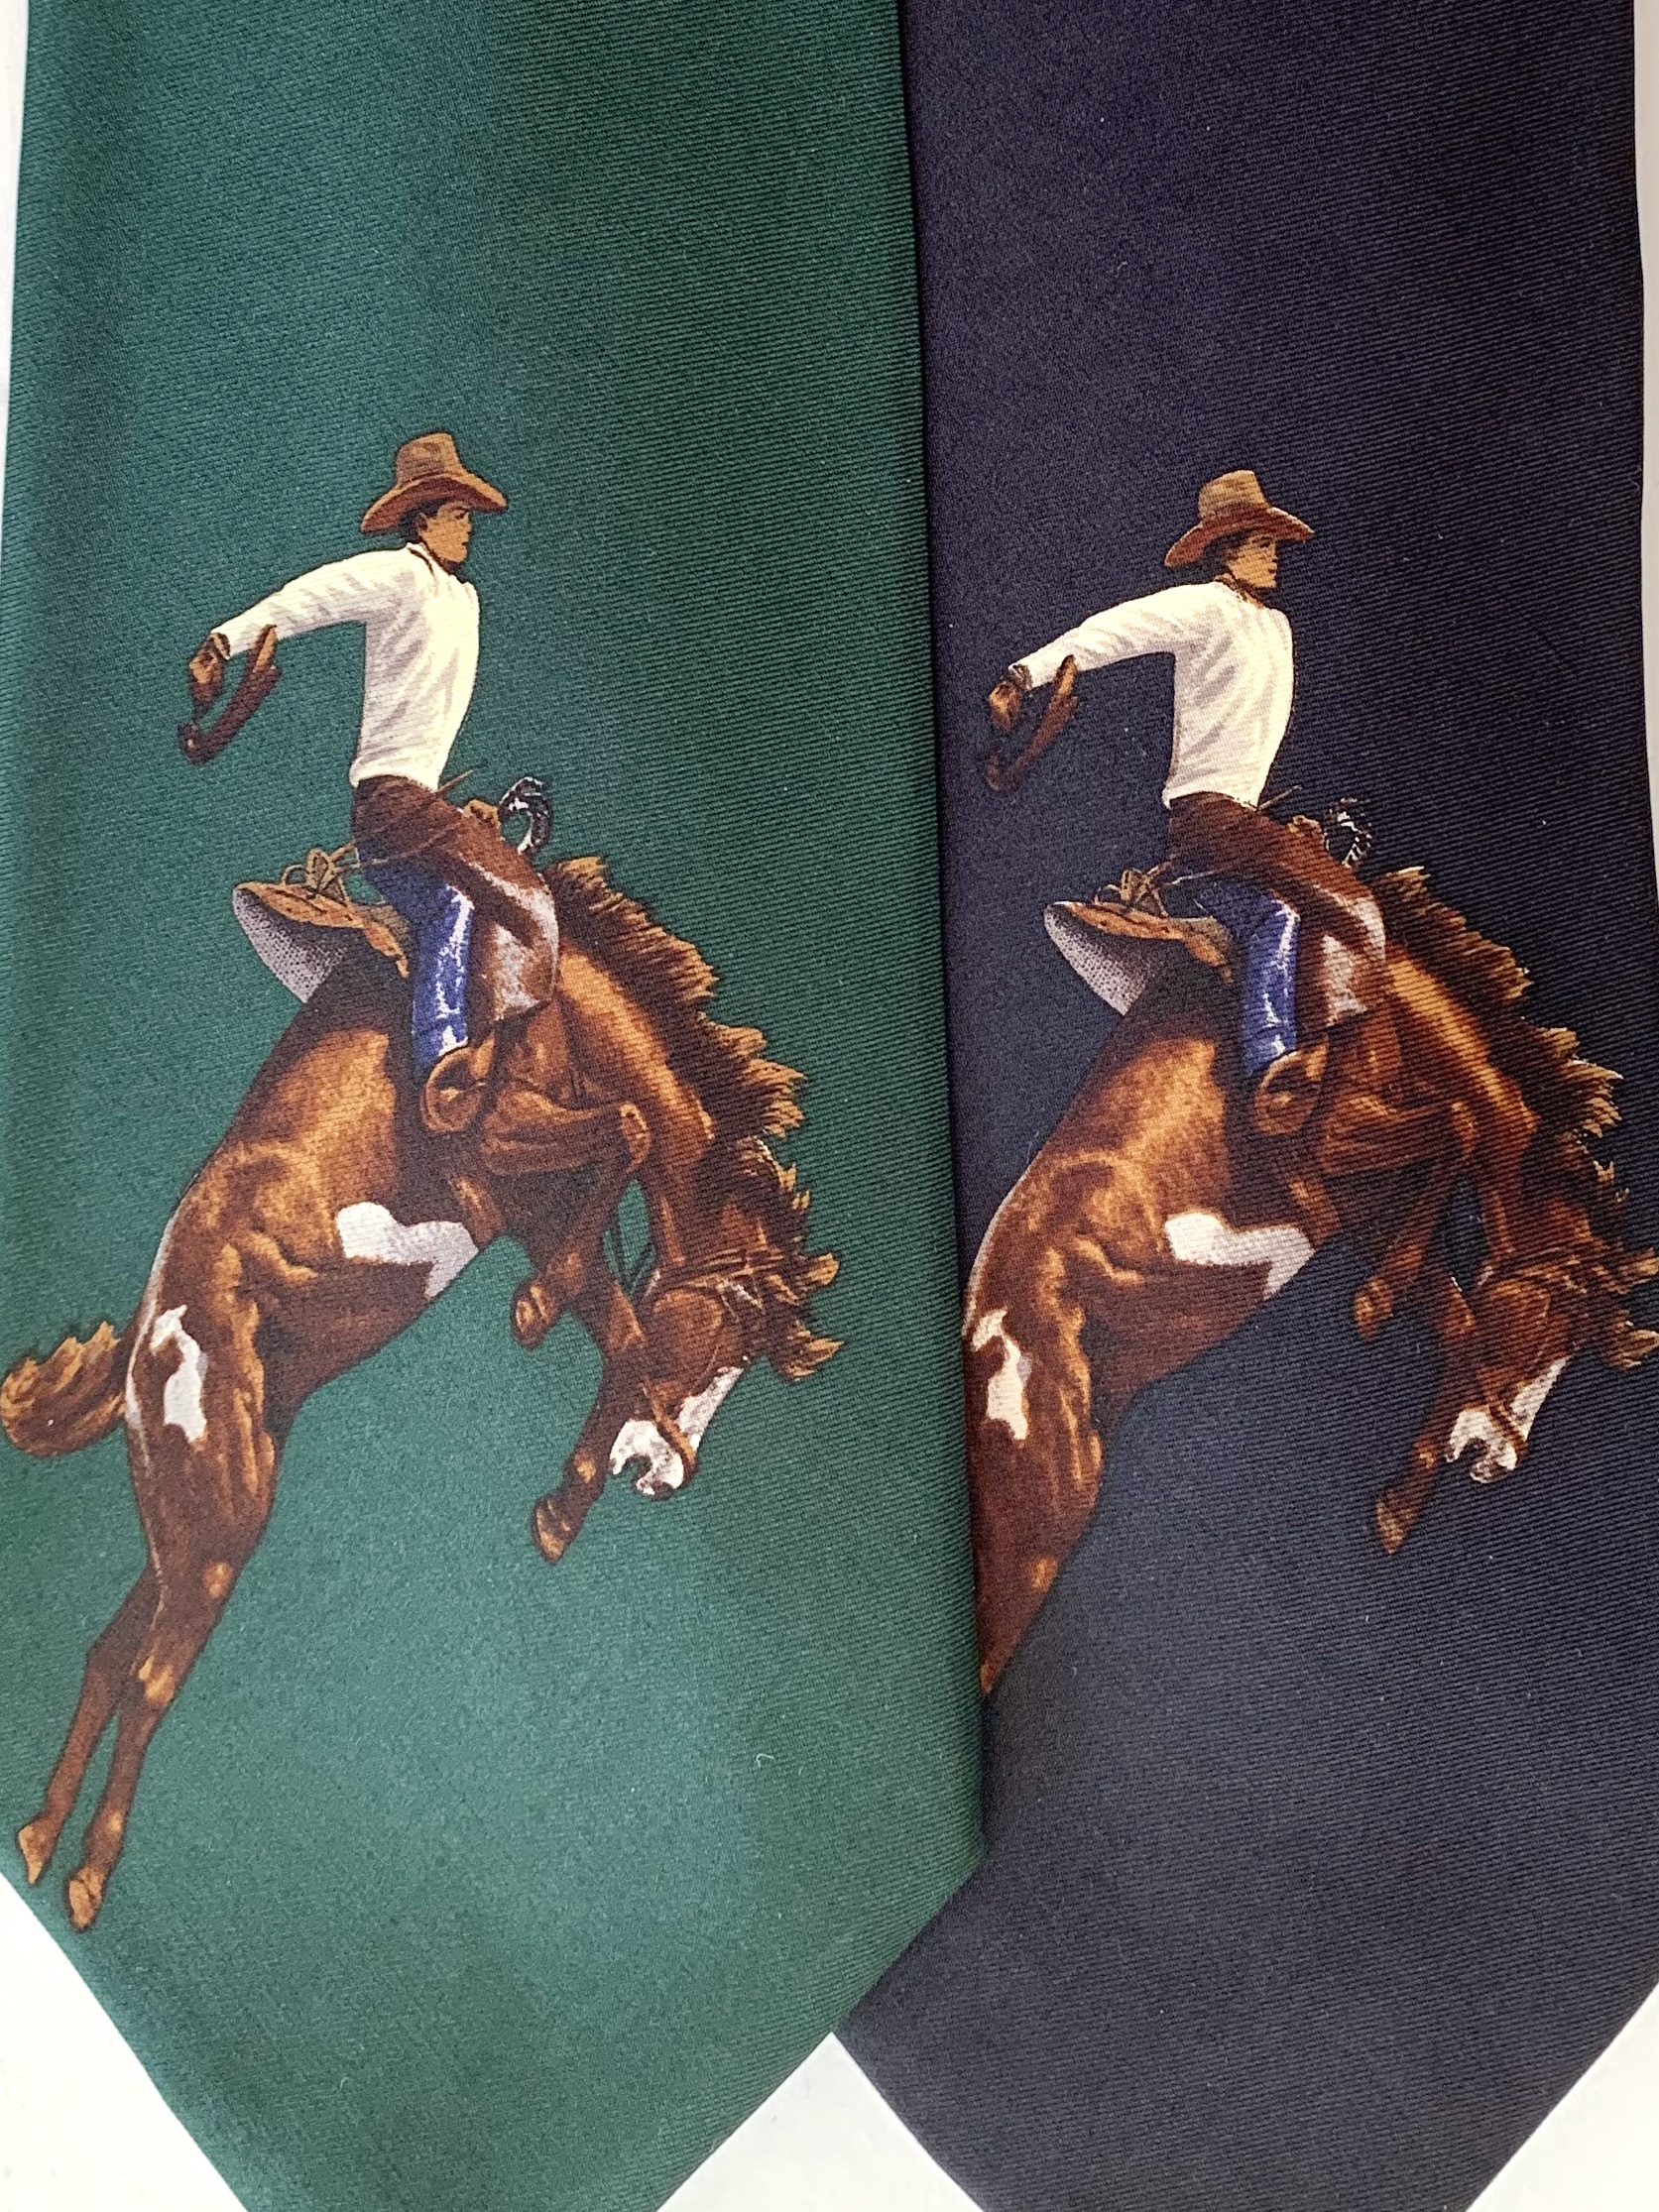 Bucking Broncos on Vintage Polo Tie